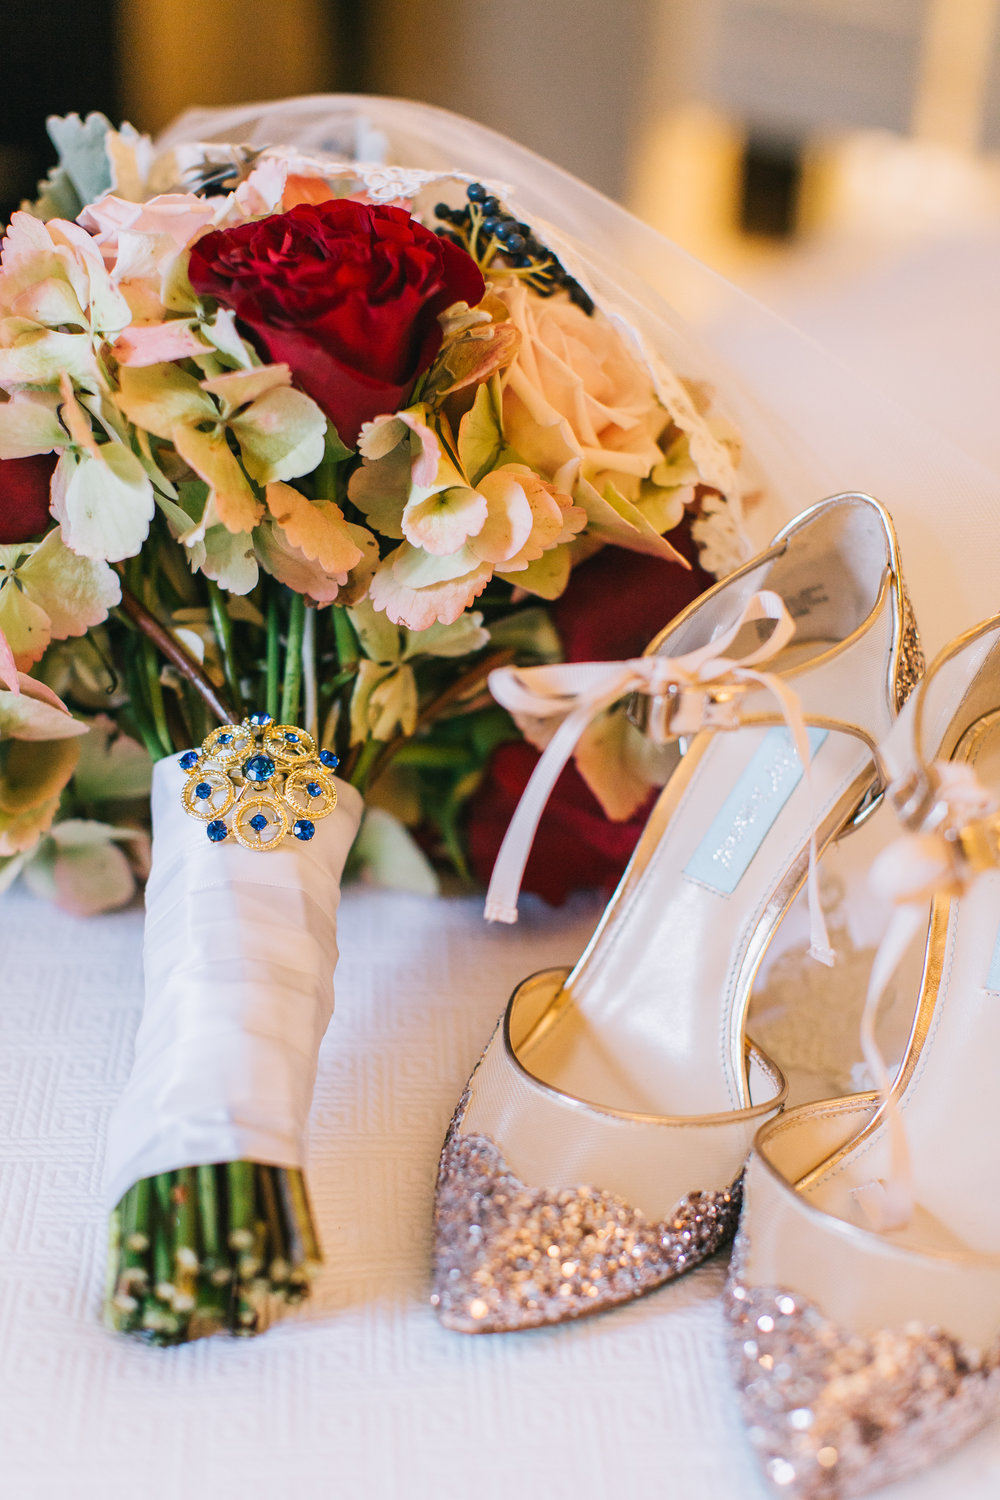 Bluegrass Chic - Bridal Bouquet and Shoes